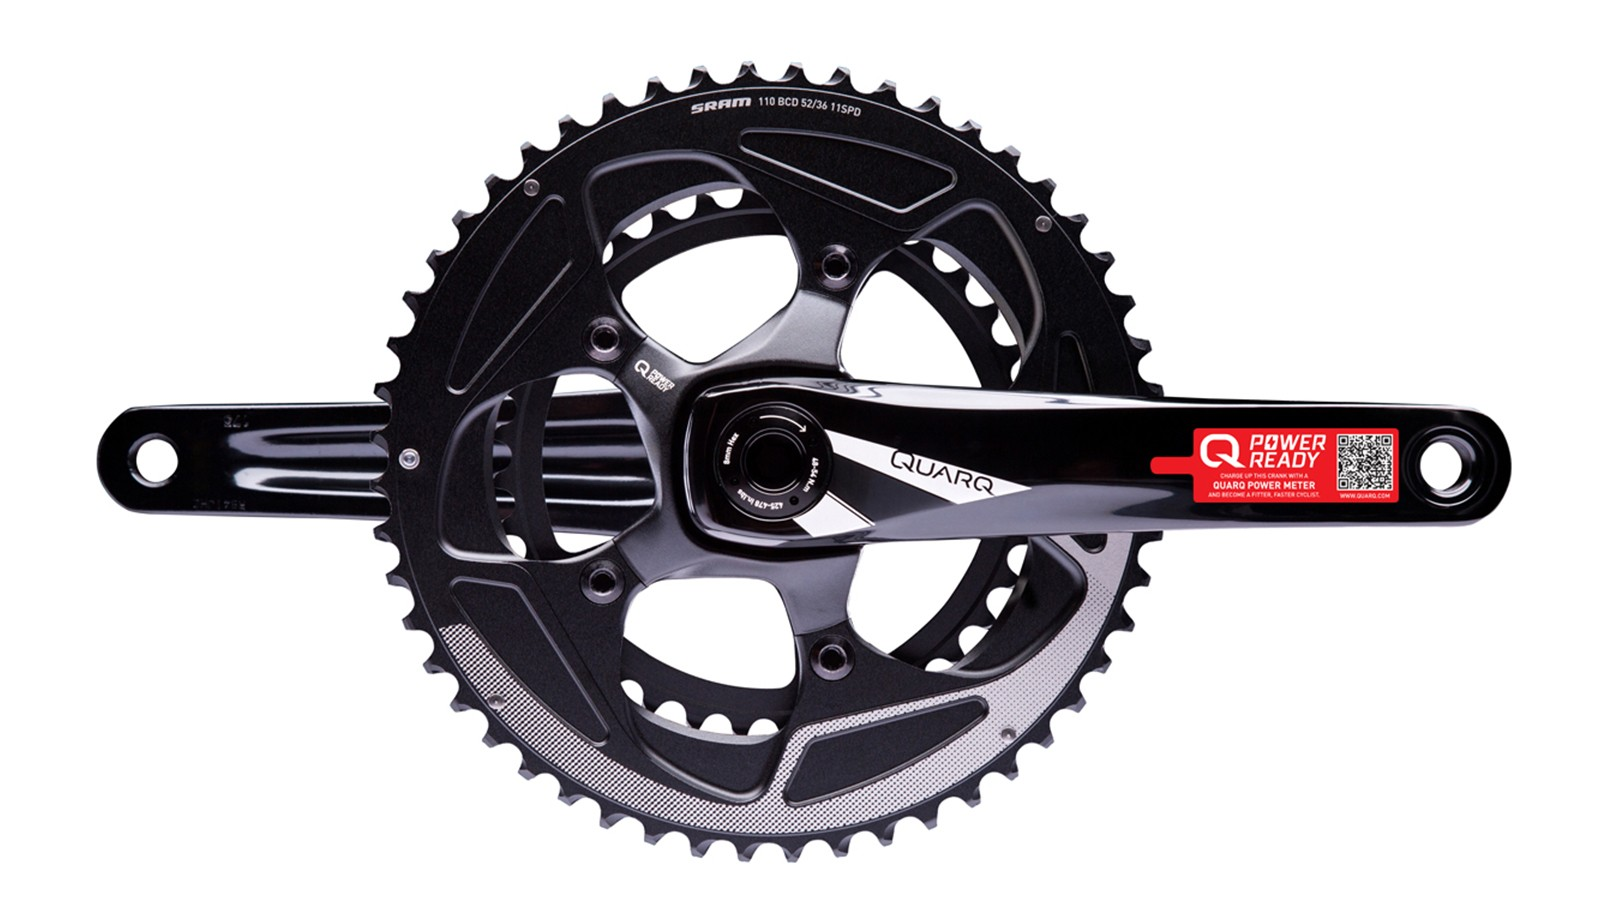 The new Quarq Prime 'power-ready' crankset